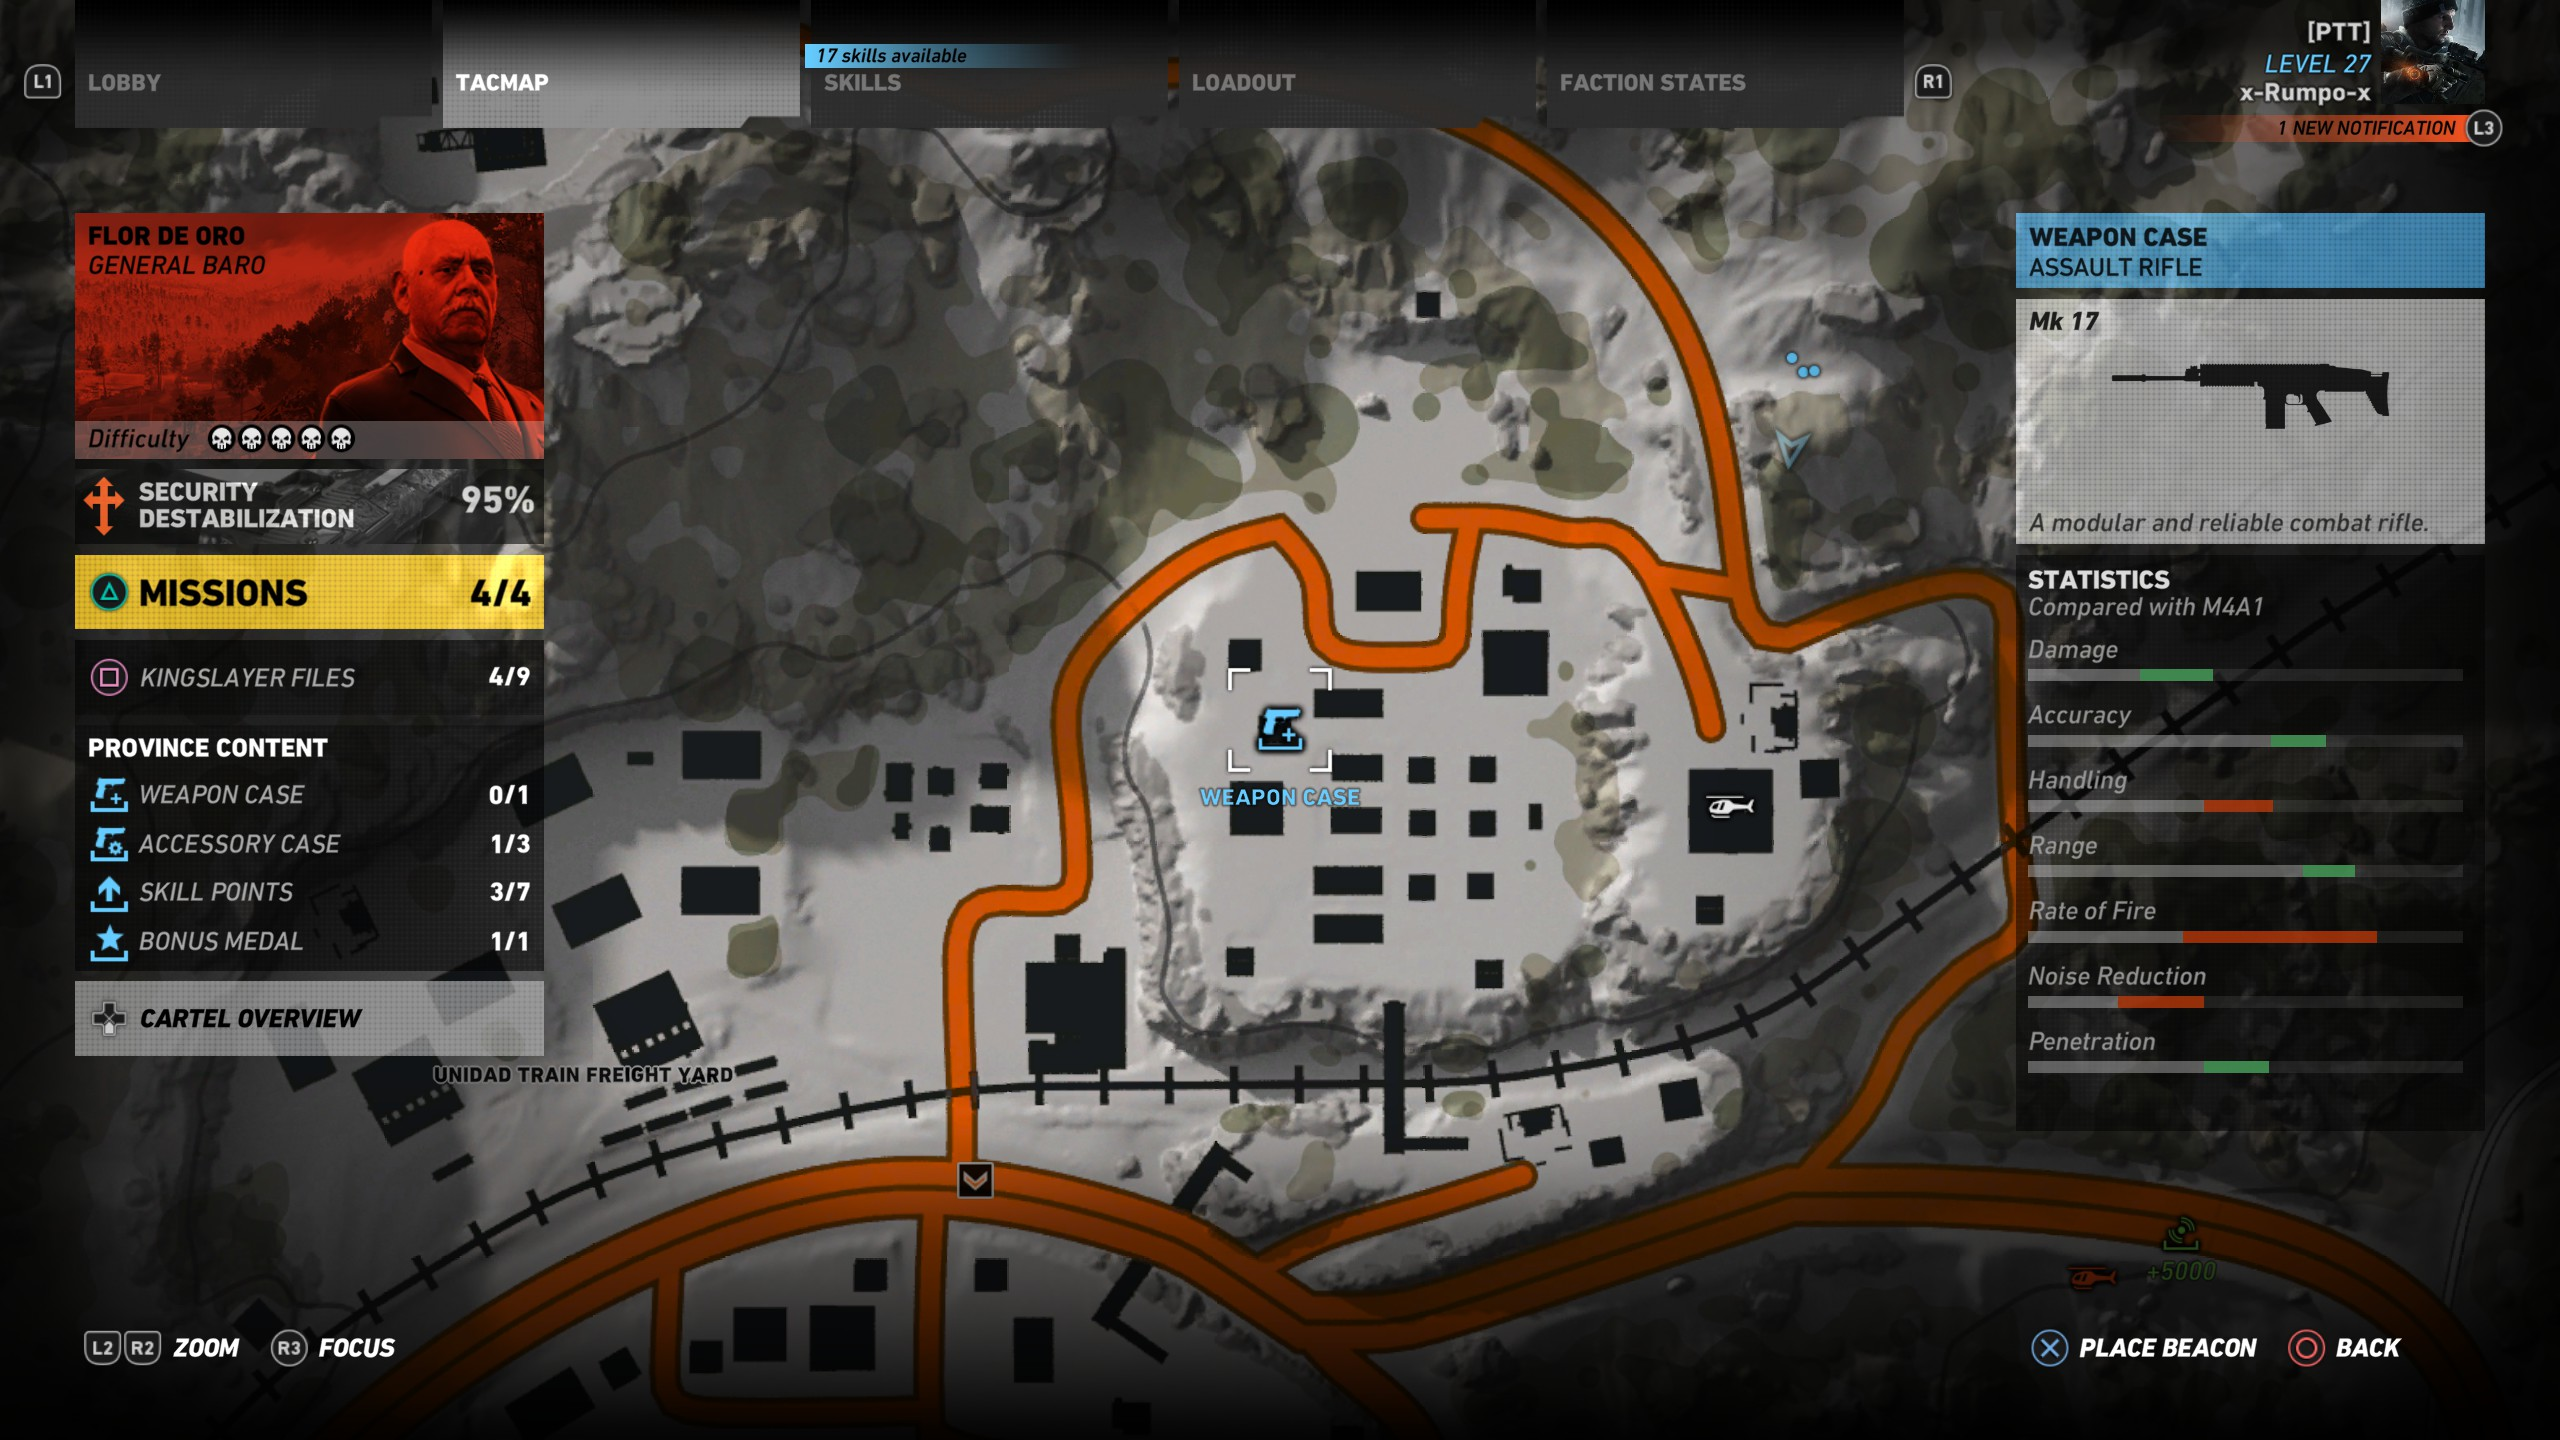 map image of the MK17 location in Ghost Recon Wildlands